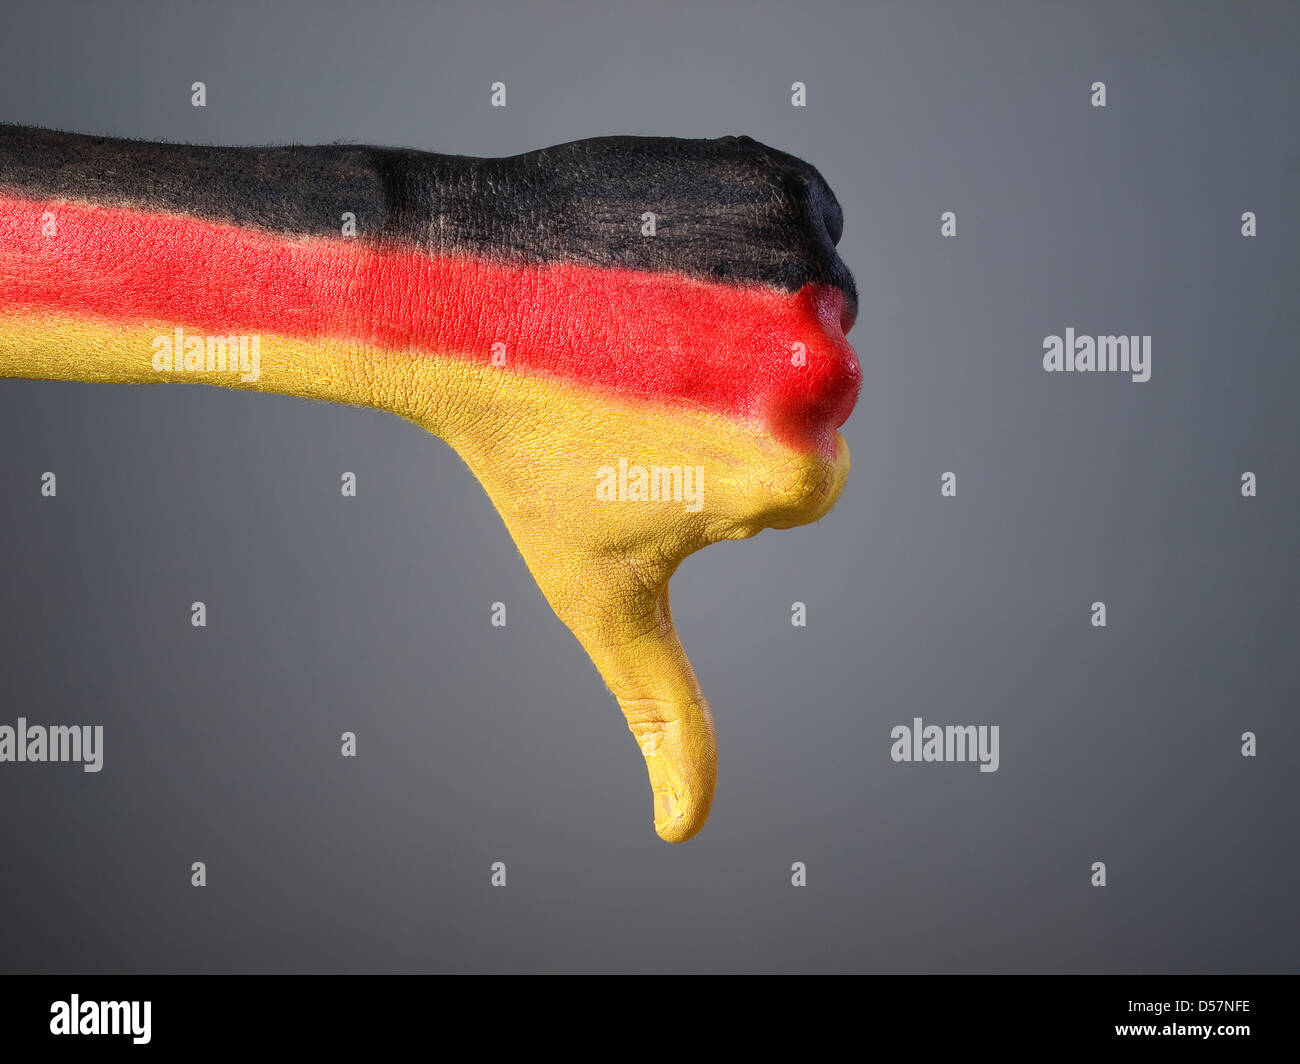 Hand painted with the flag of Germany, expressing negativity and isolated on gray background - Stock Image